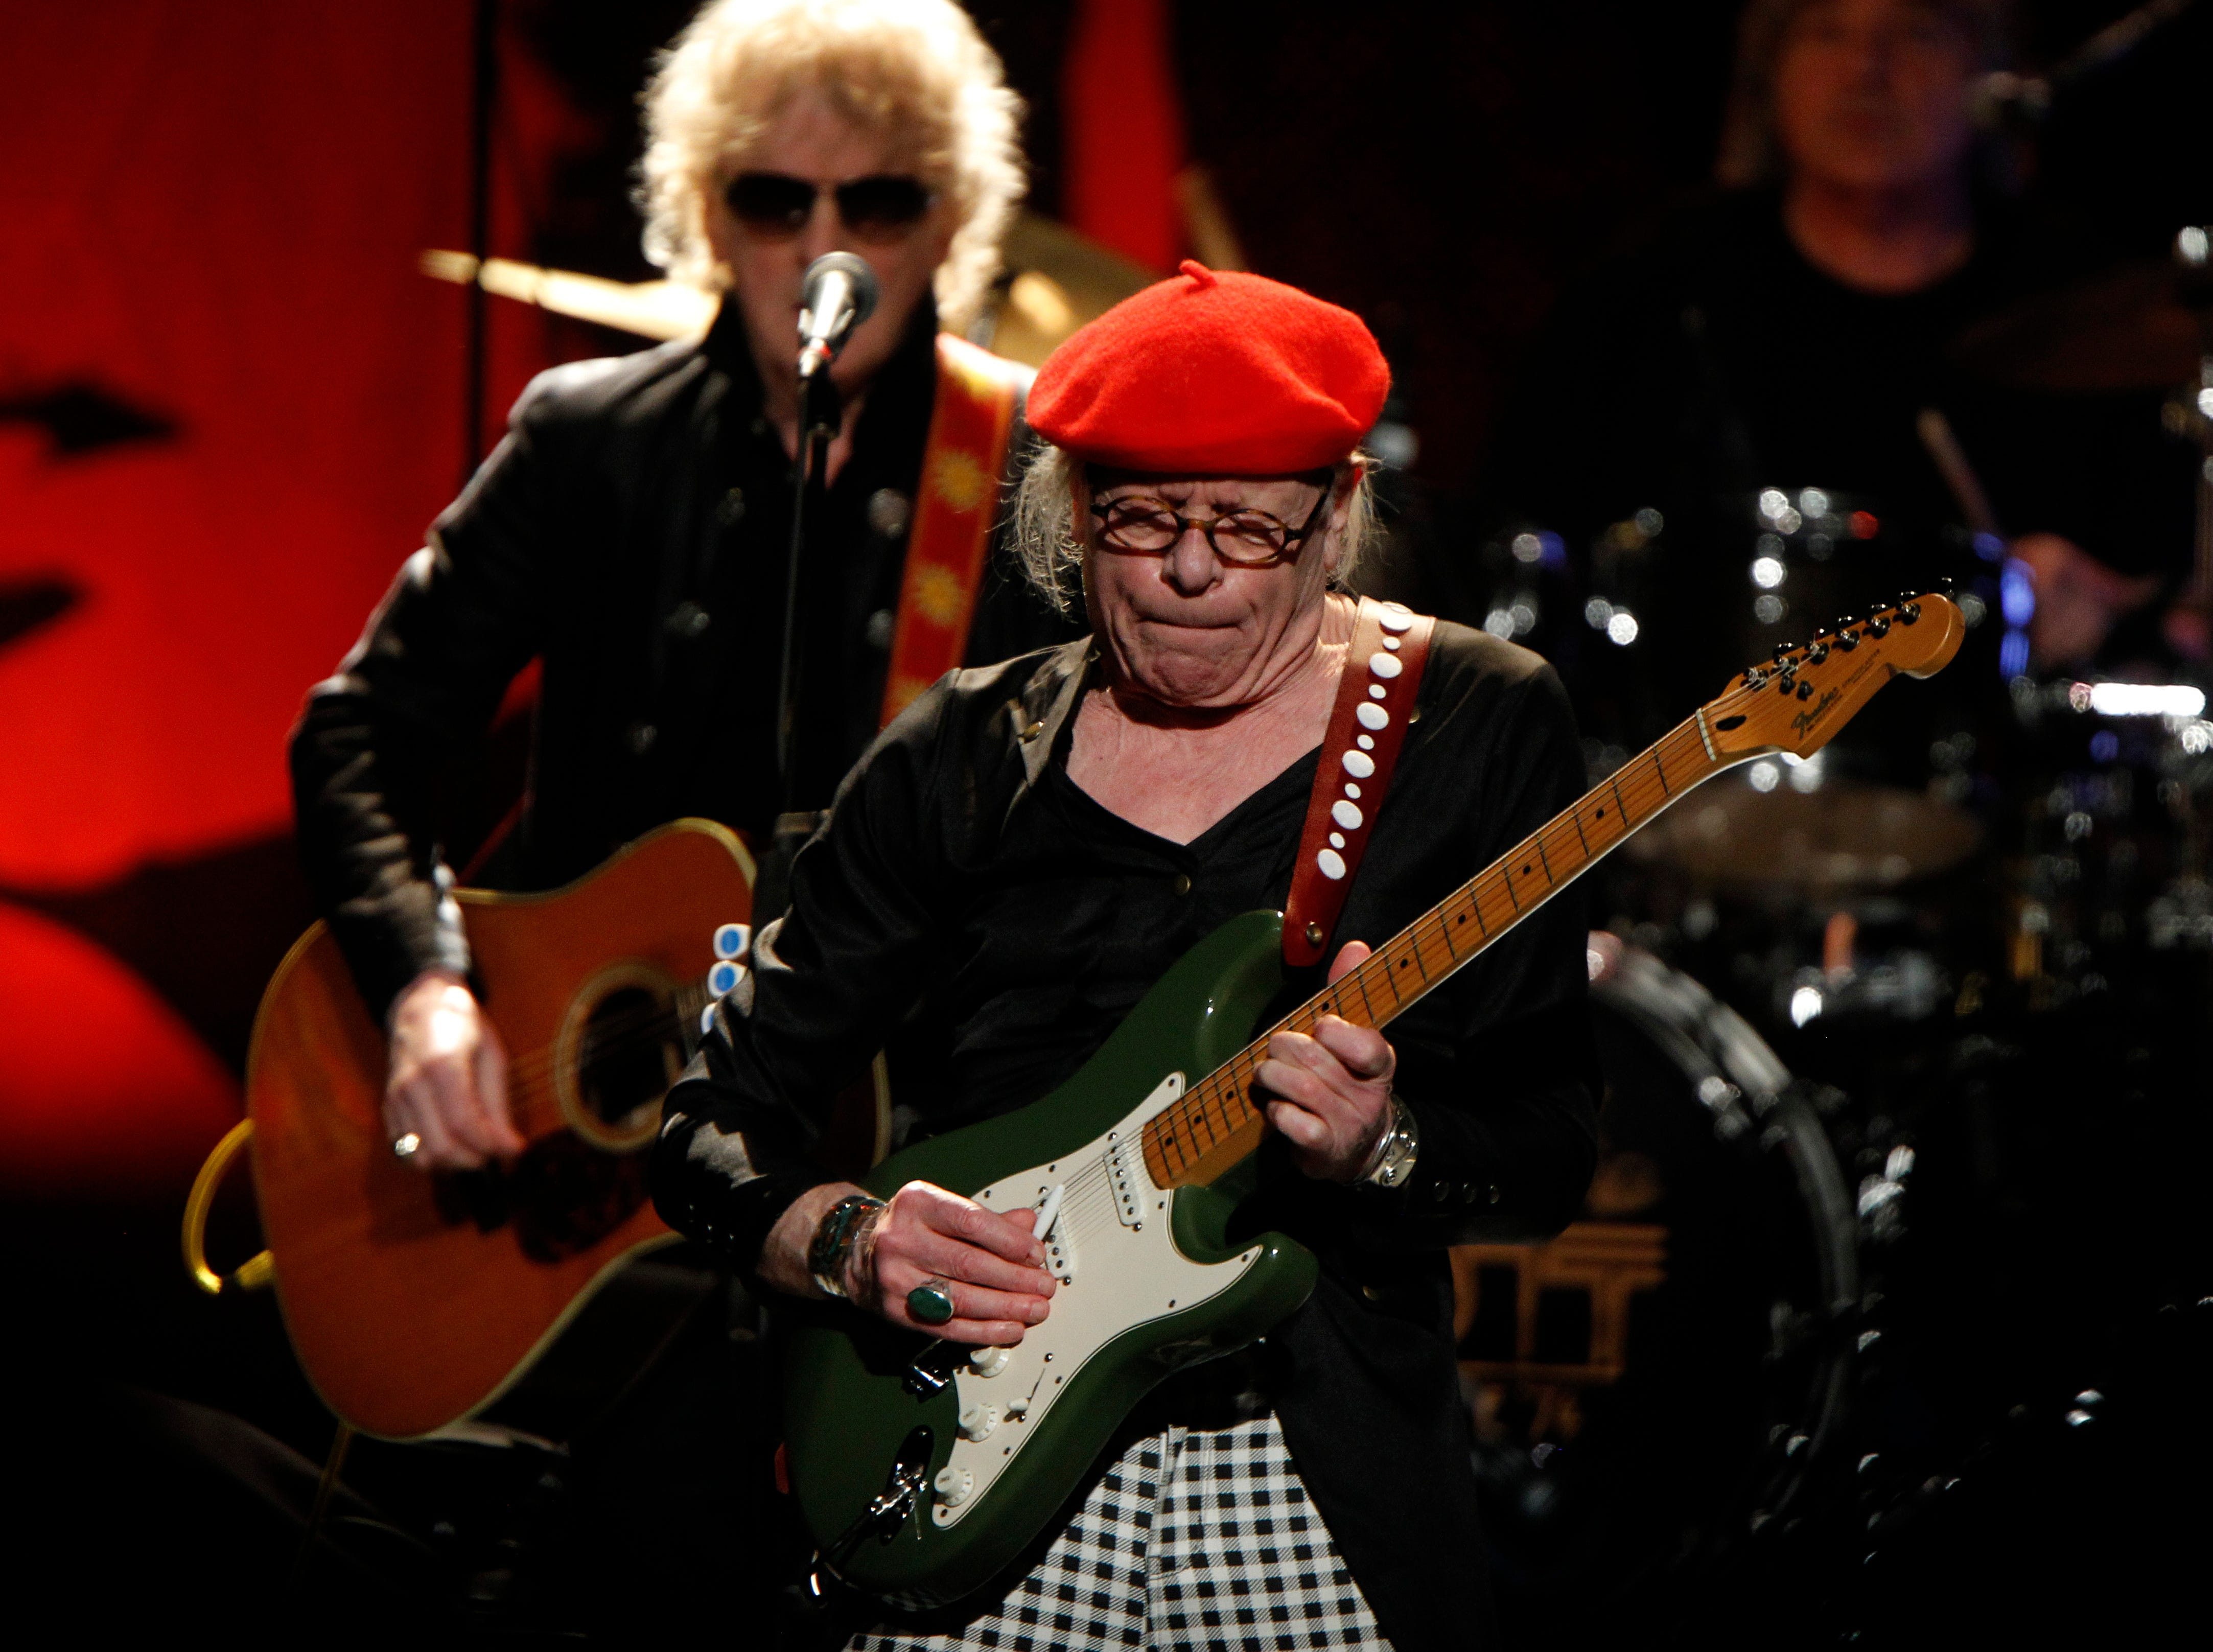 Ariel Bender, from the Mott The Hoople perform at the Miller High Life Theatre in Milwaukee.